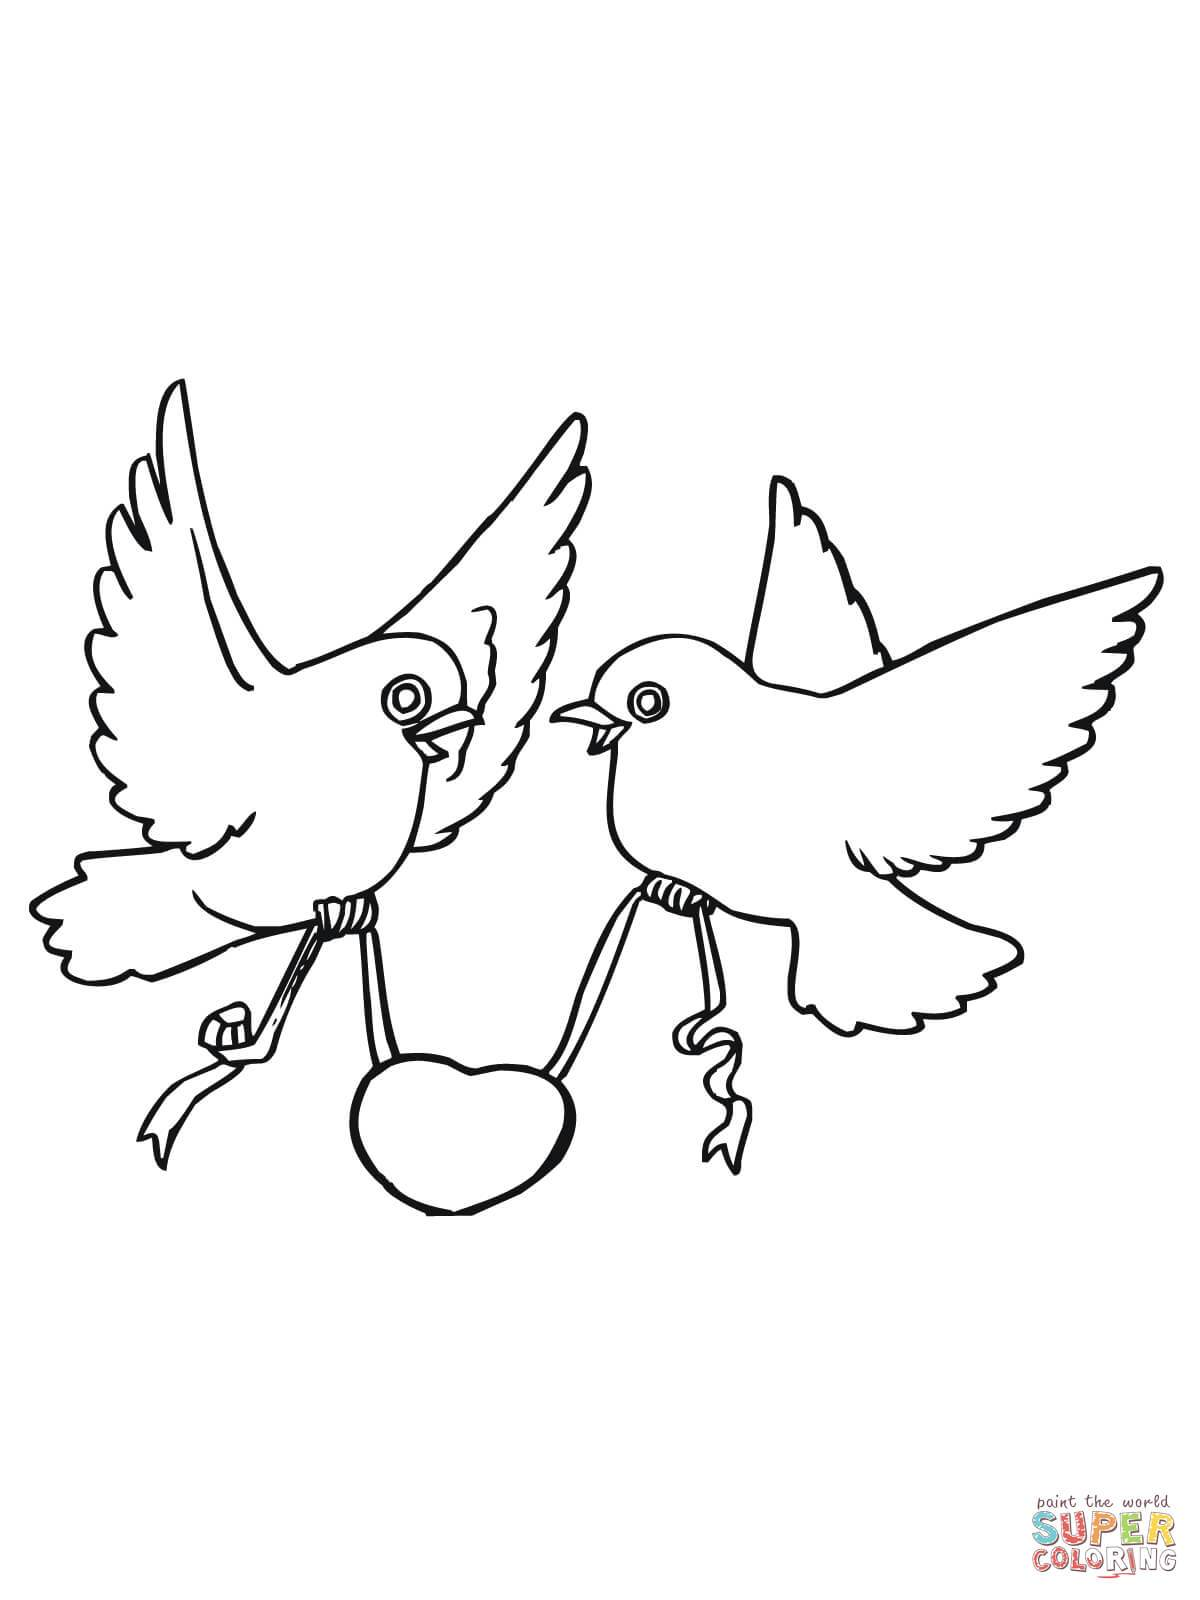 Make Your Own Coloring Pages Online at GetColorings.com